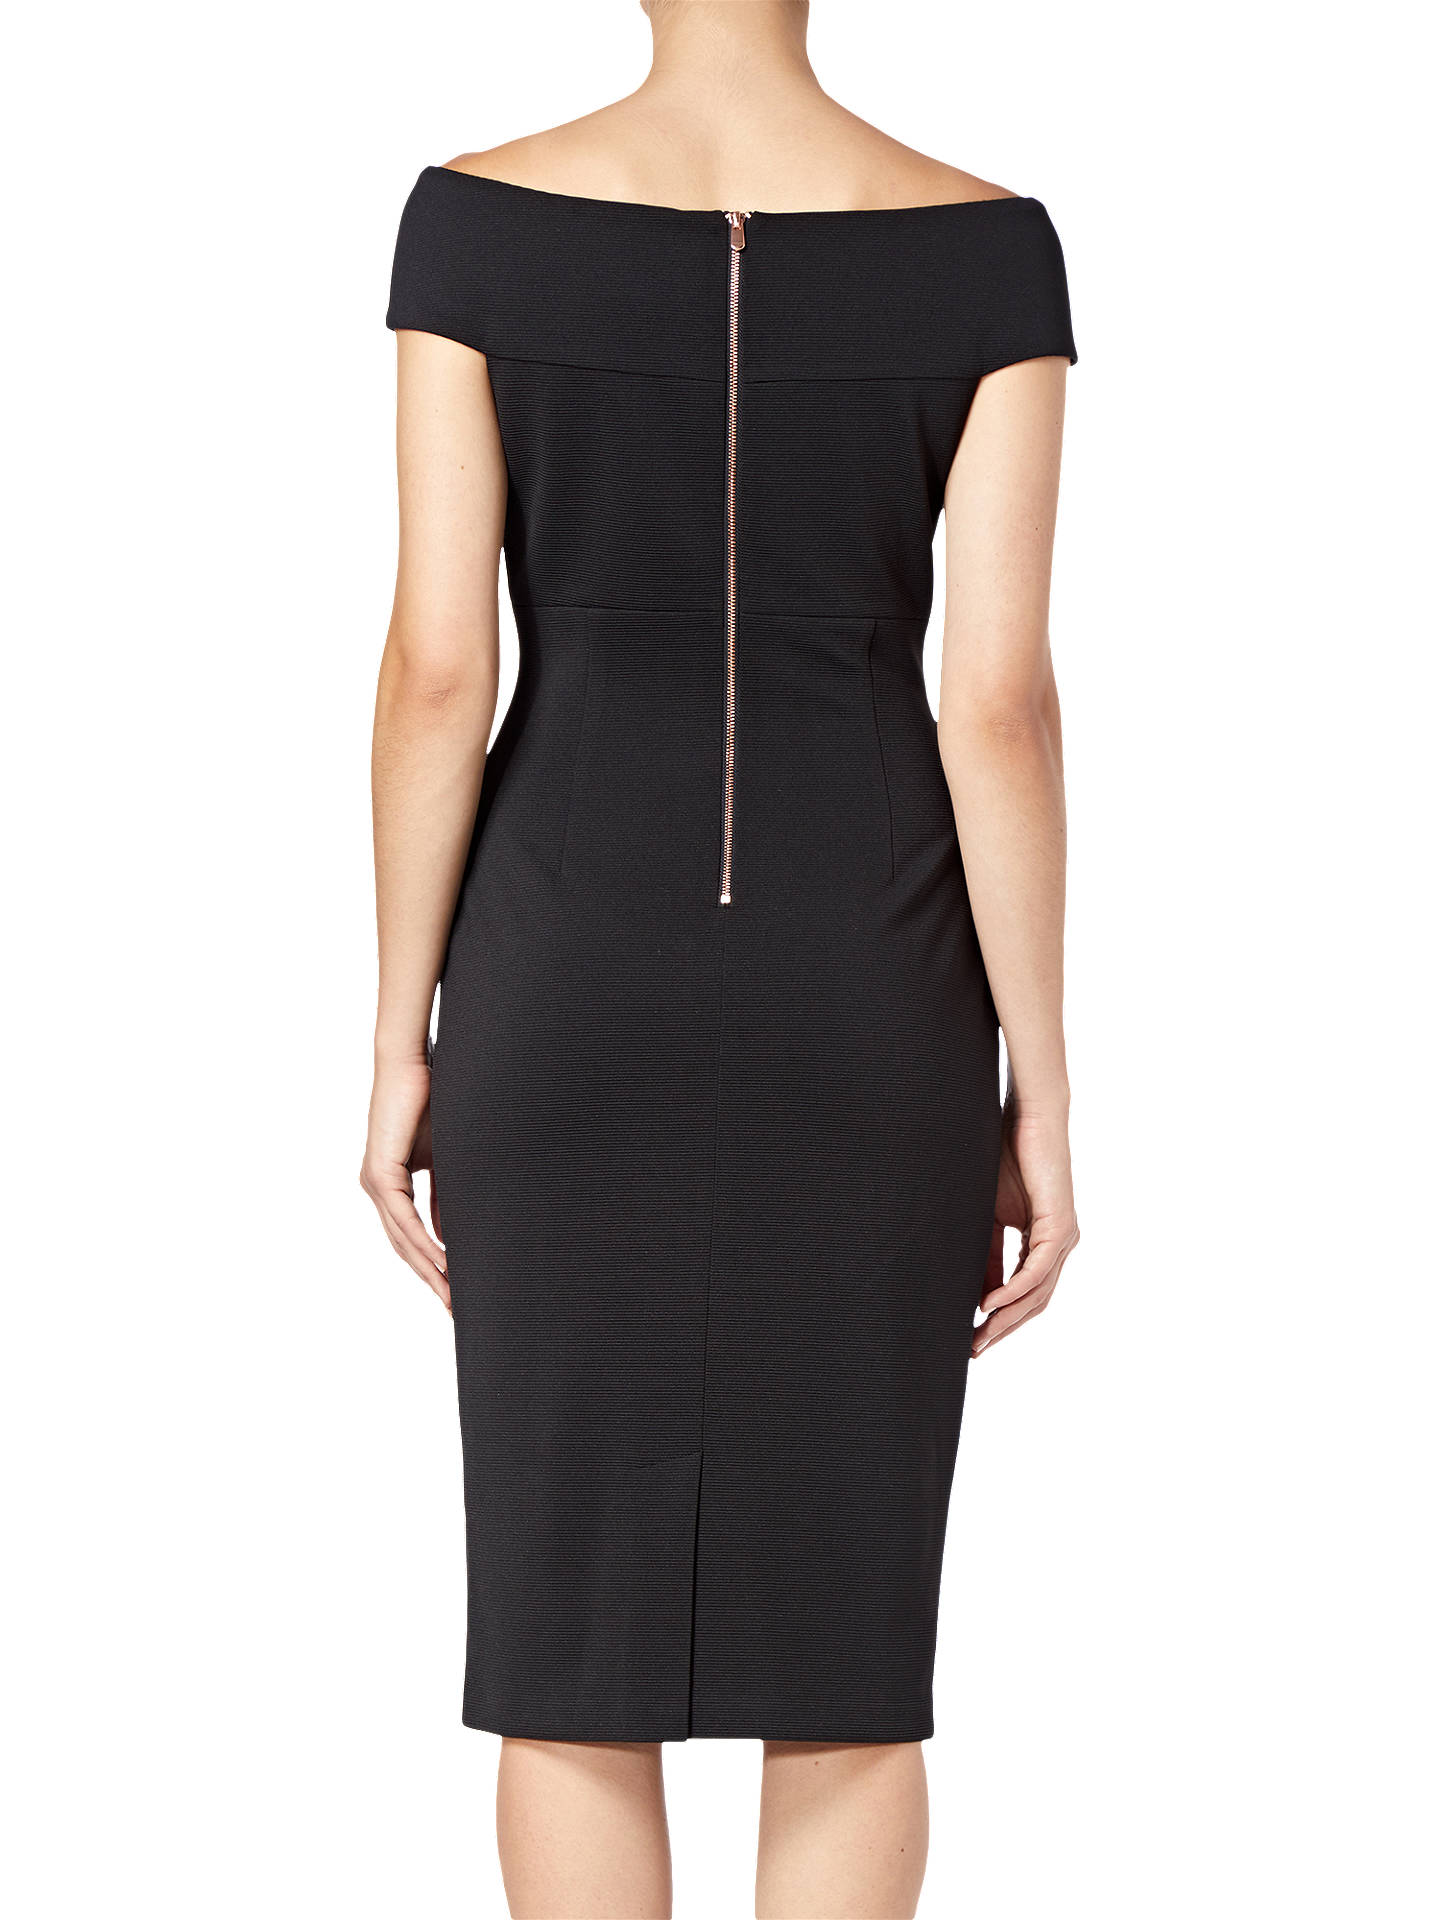 BuyAdrianna Papell Plus Size Daphne Ottoman Sheath Dress, Black, 24 Online at johnlewis.com